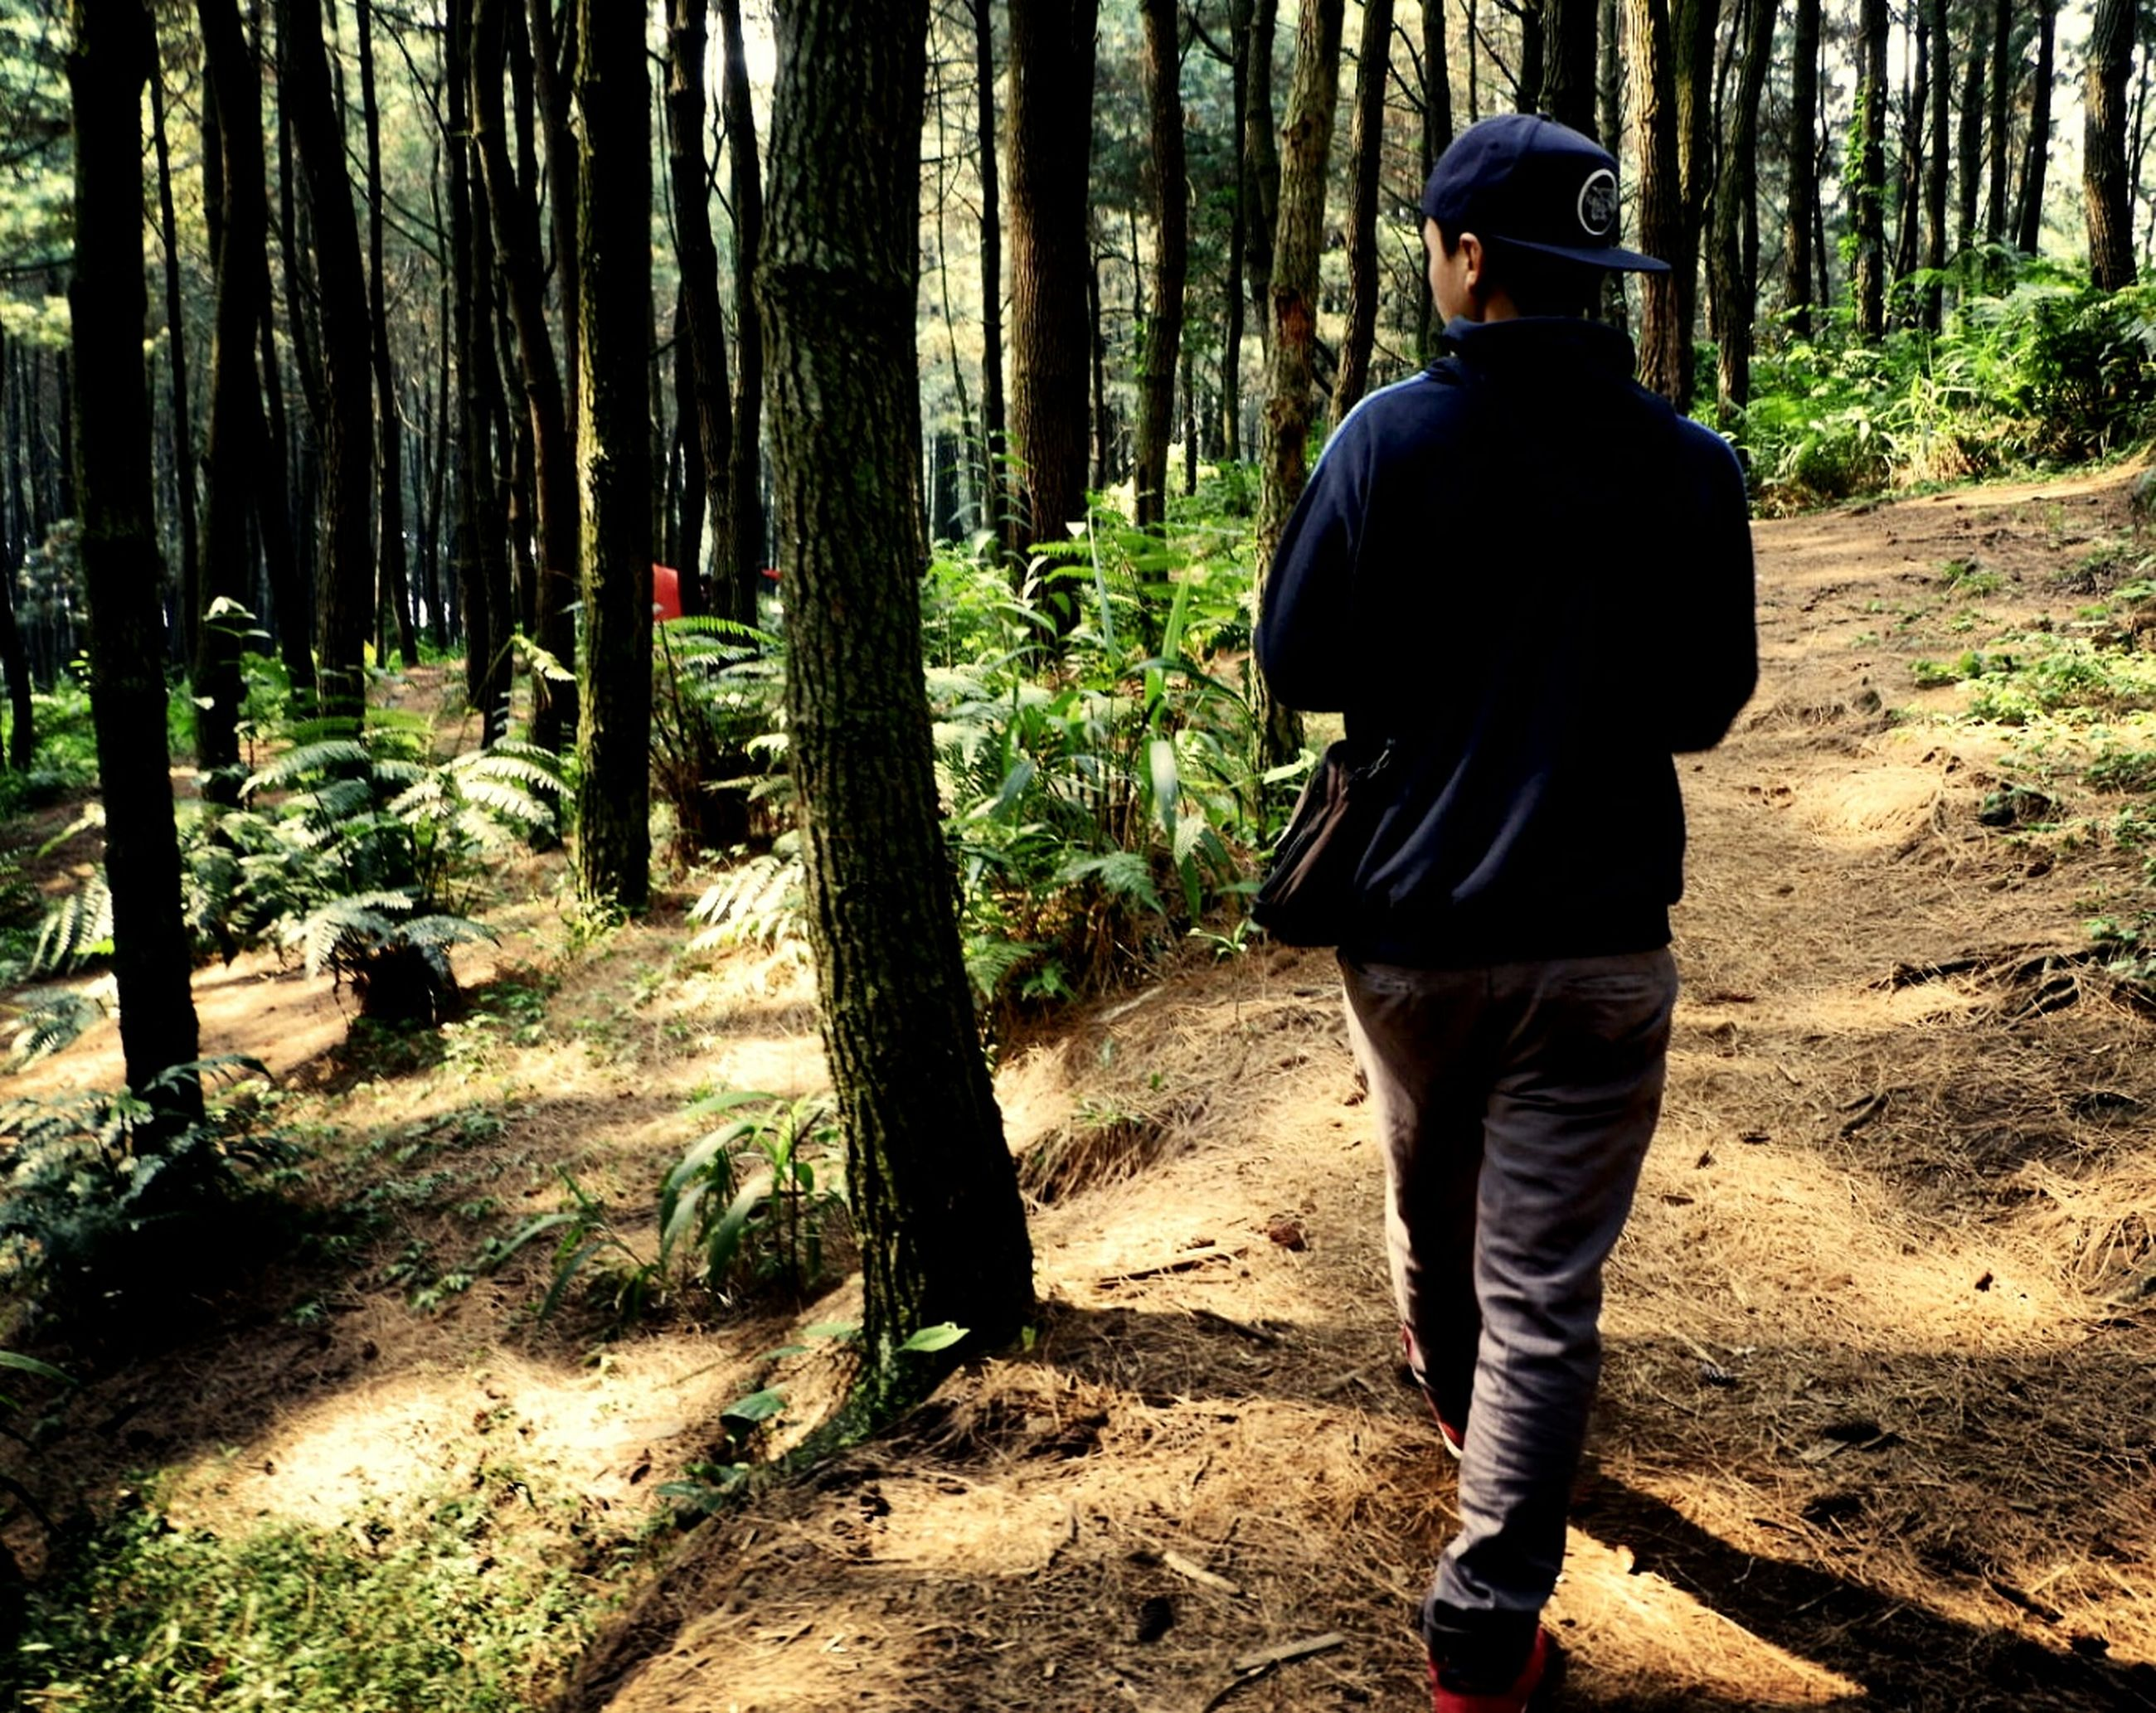 tree, forest, land, one person, plant, real people, rear view, nature, day, leisure activity, men, lifestyles, trunk, woodland, tree trunk, full length, clothing, standing, walking, outdoors